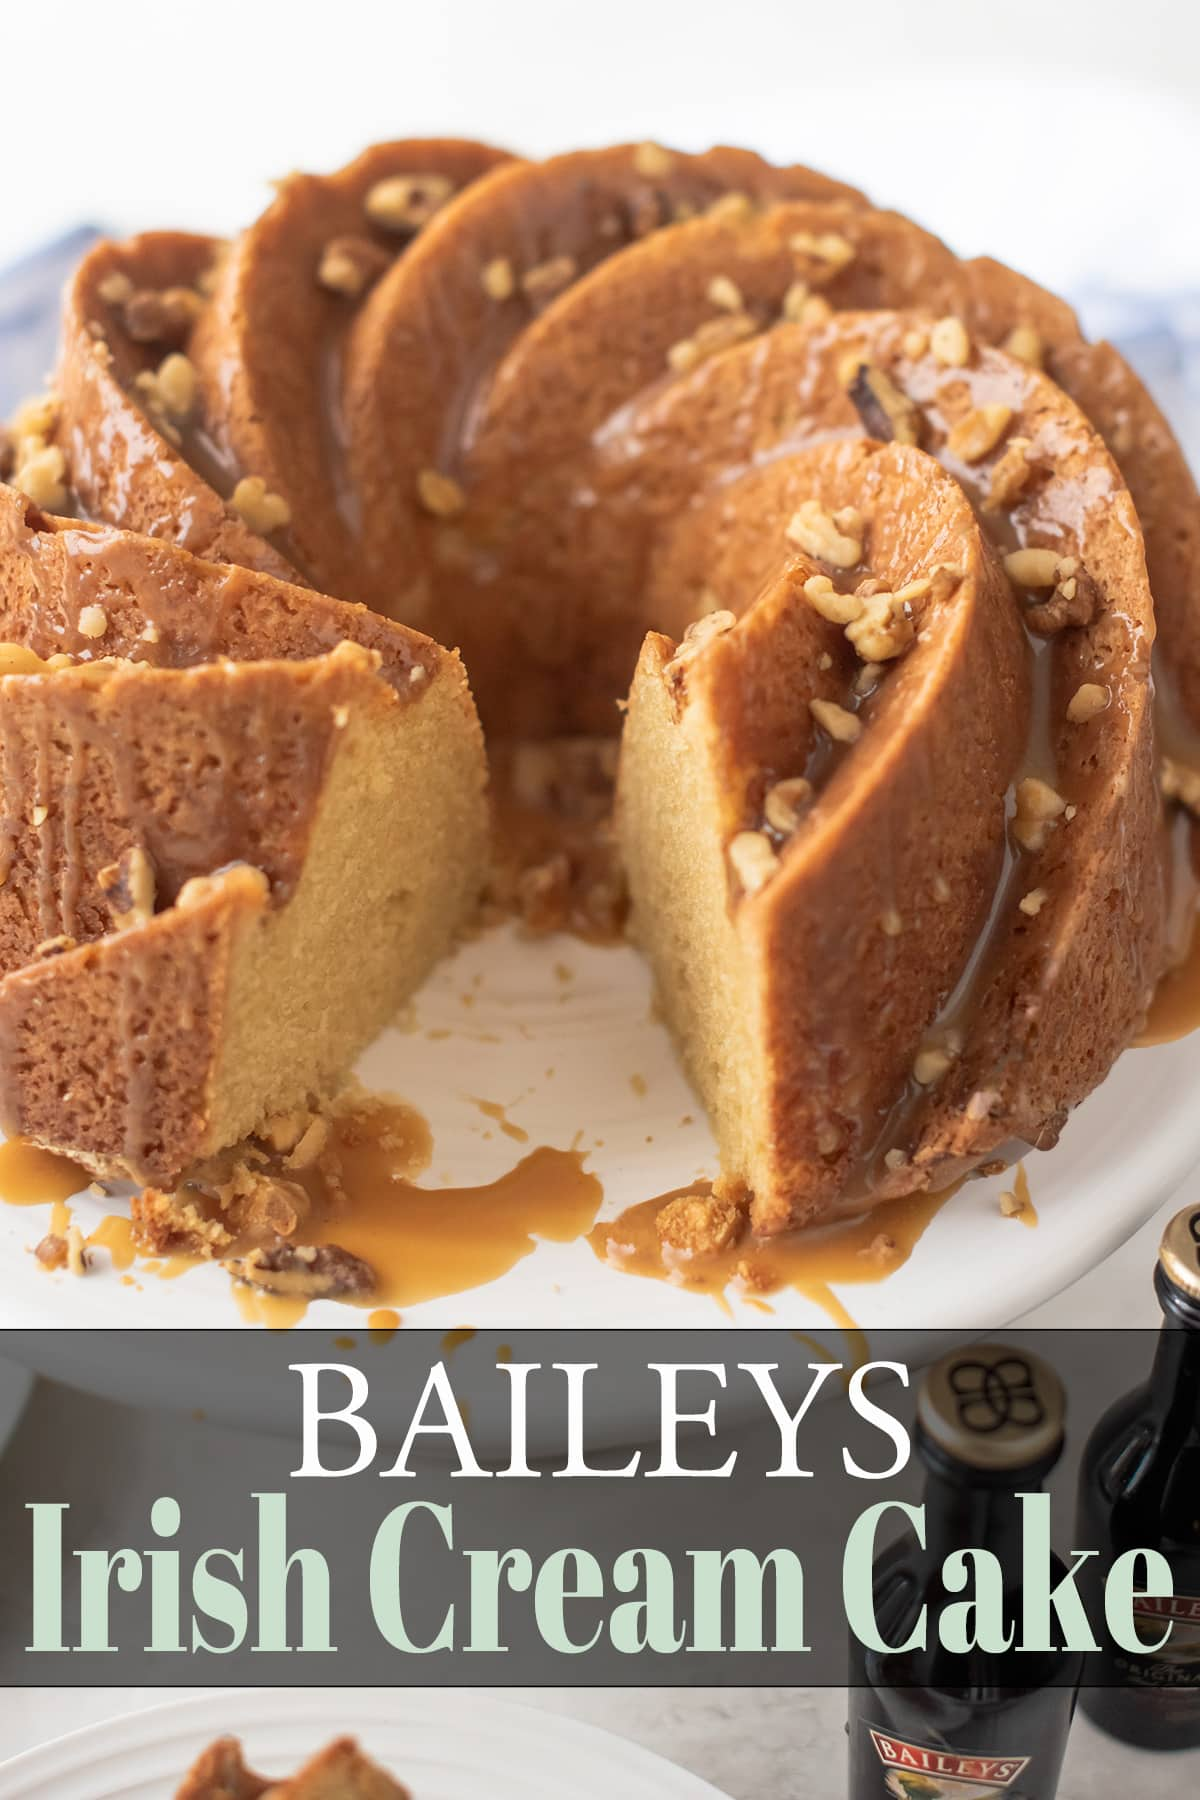 Bailey's Irish Cream Cake with slice cut out and Bailey's glaze and walnut topping cascading over top and sides. Bailey's bottles in distant forefront.